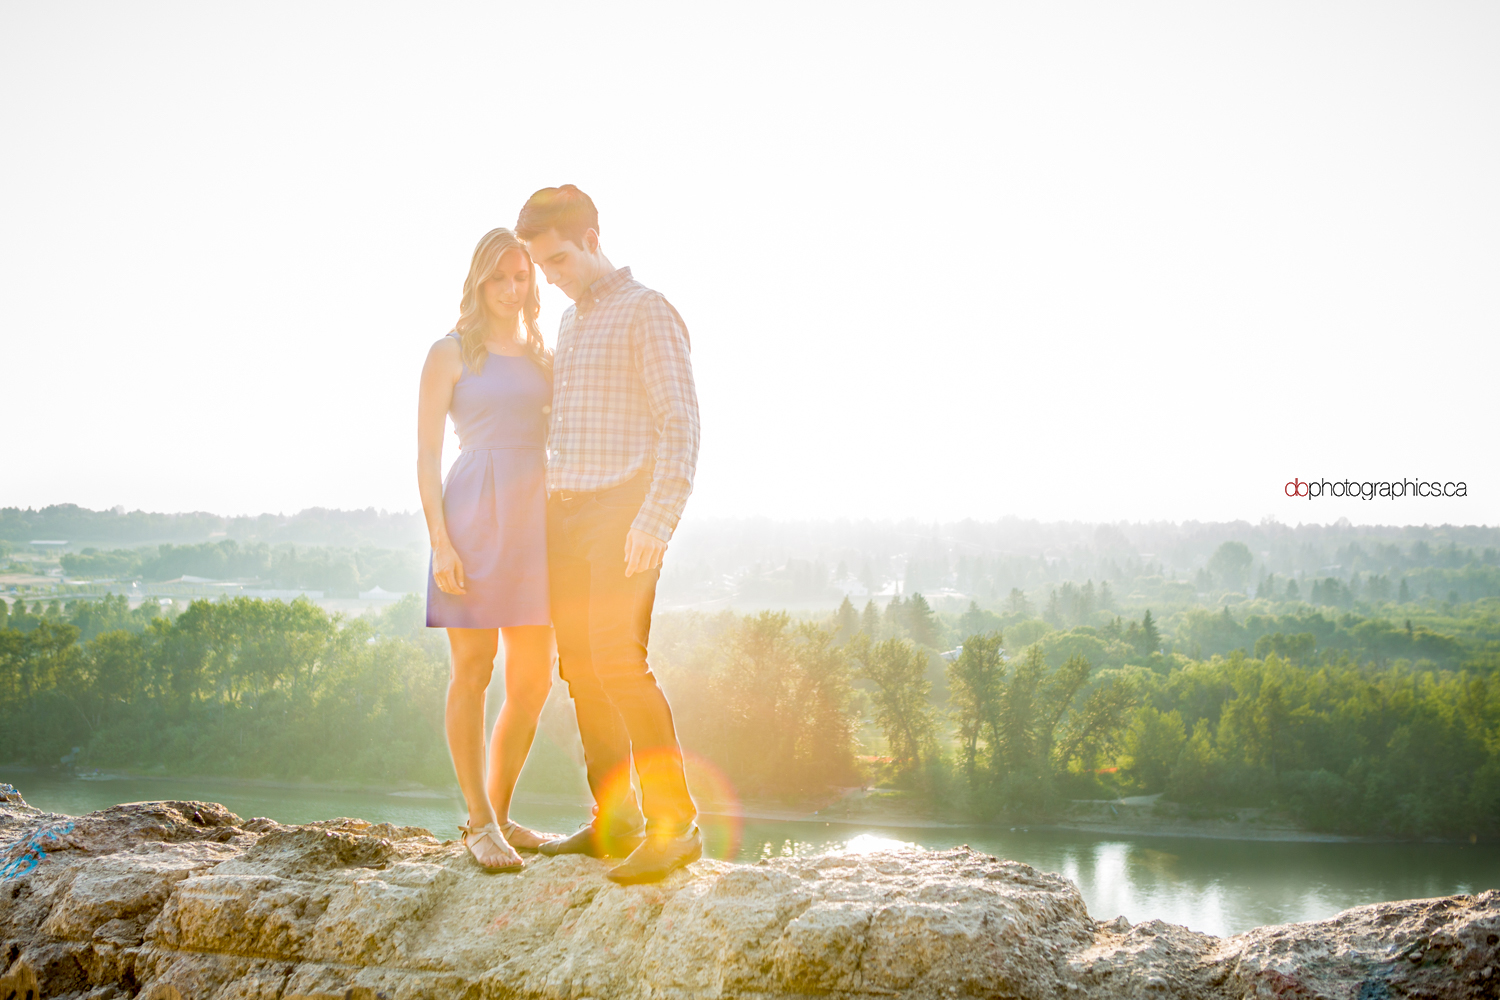 Ben & Melissa - Engagement Session - 20140713 - 0027.jpg